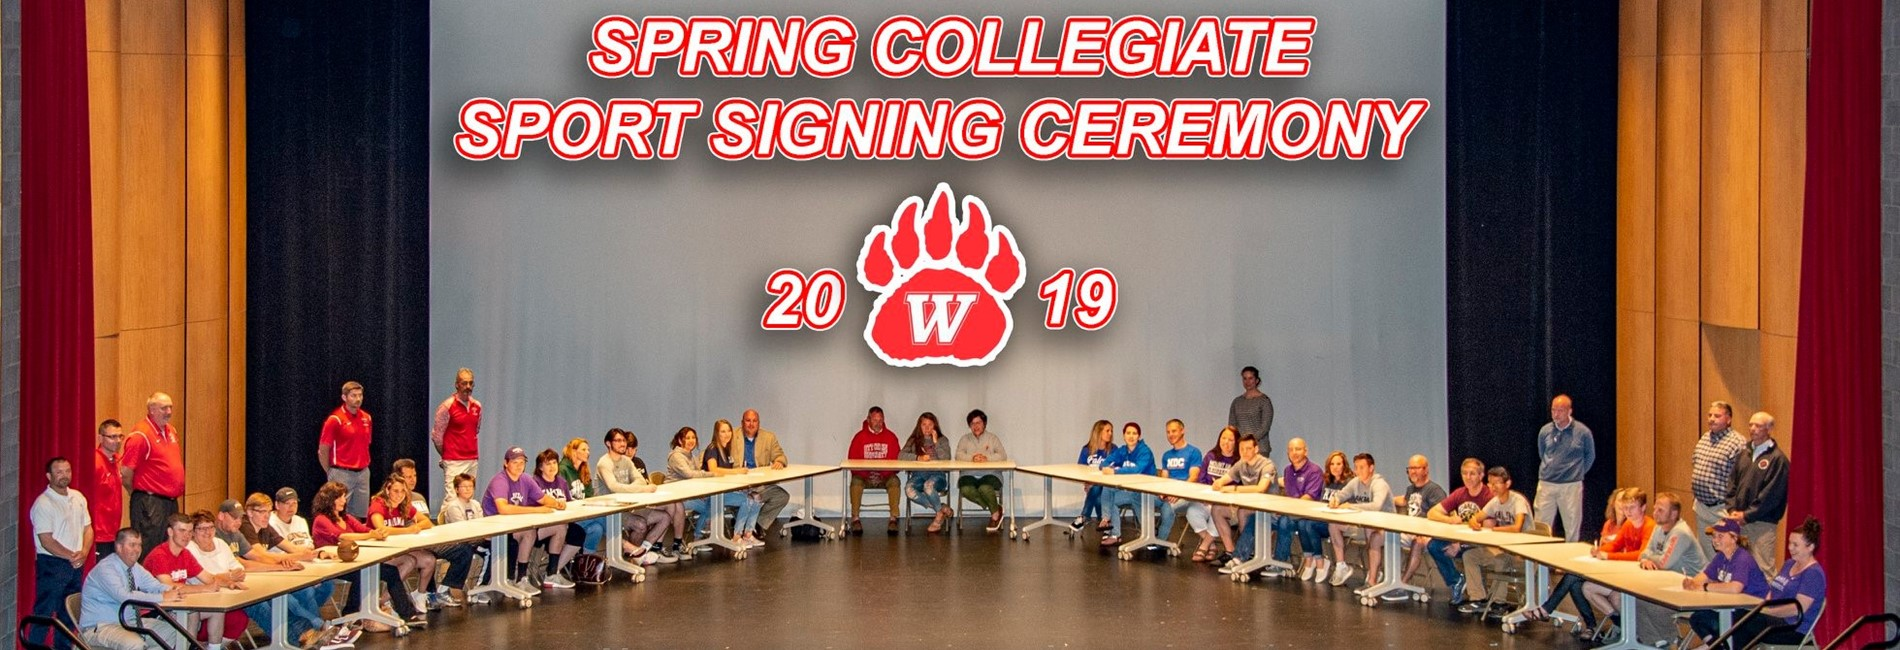 Spring Sports Signing 2019